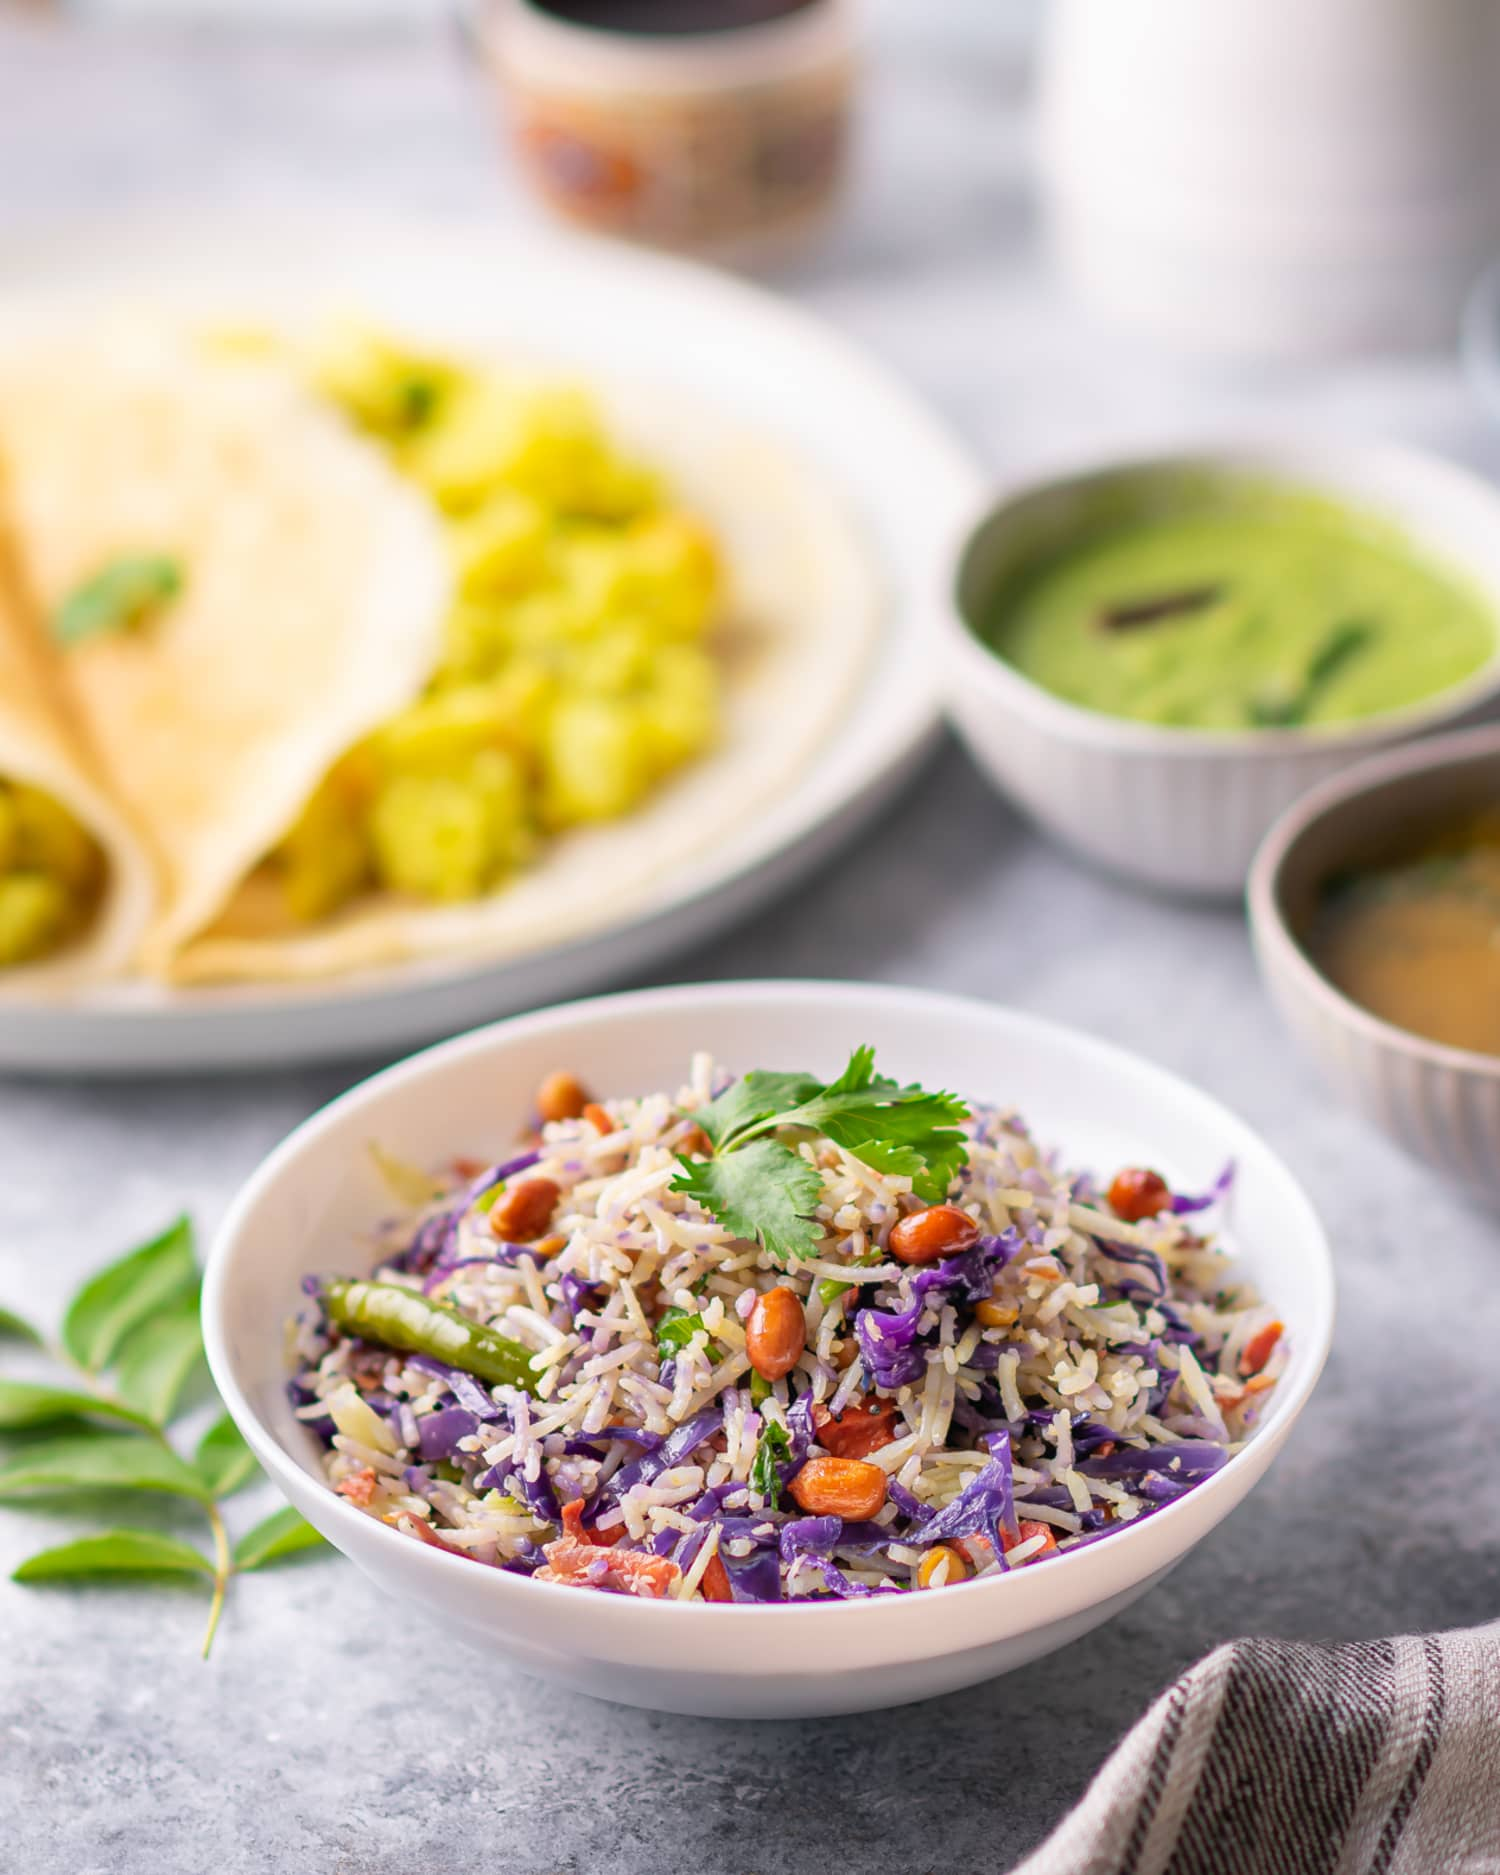 This Vibrant South Indian Rice Dish Is Packed with Cabbage, Peanuts, and Lime